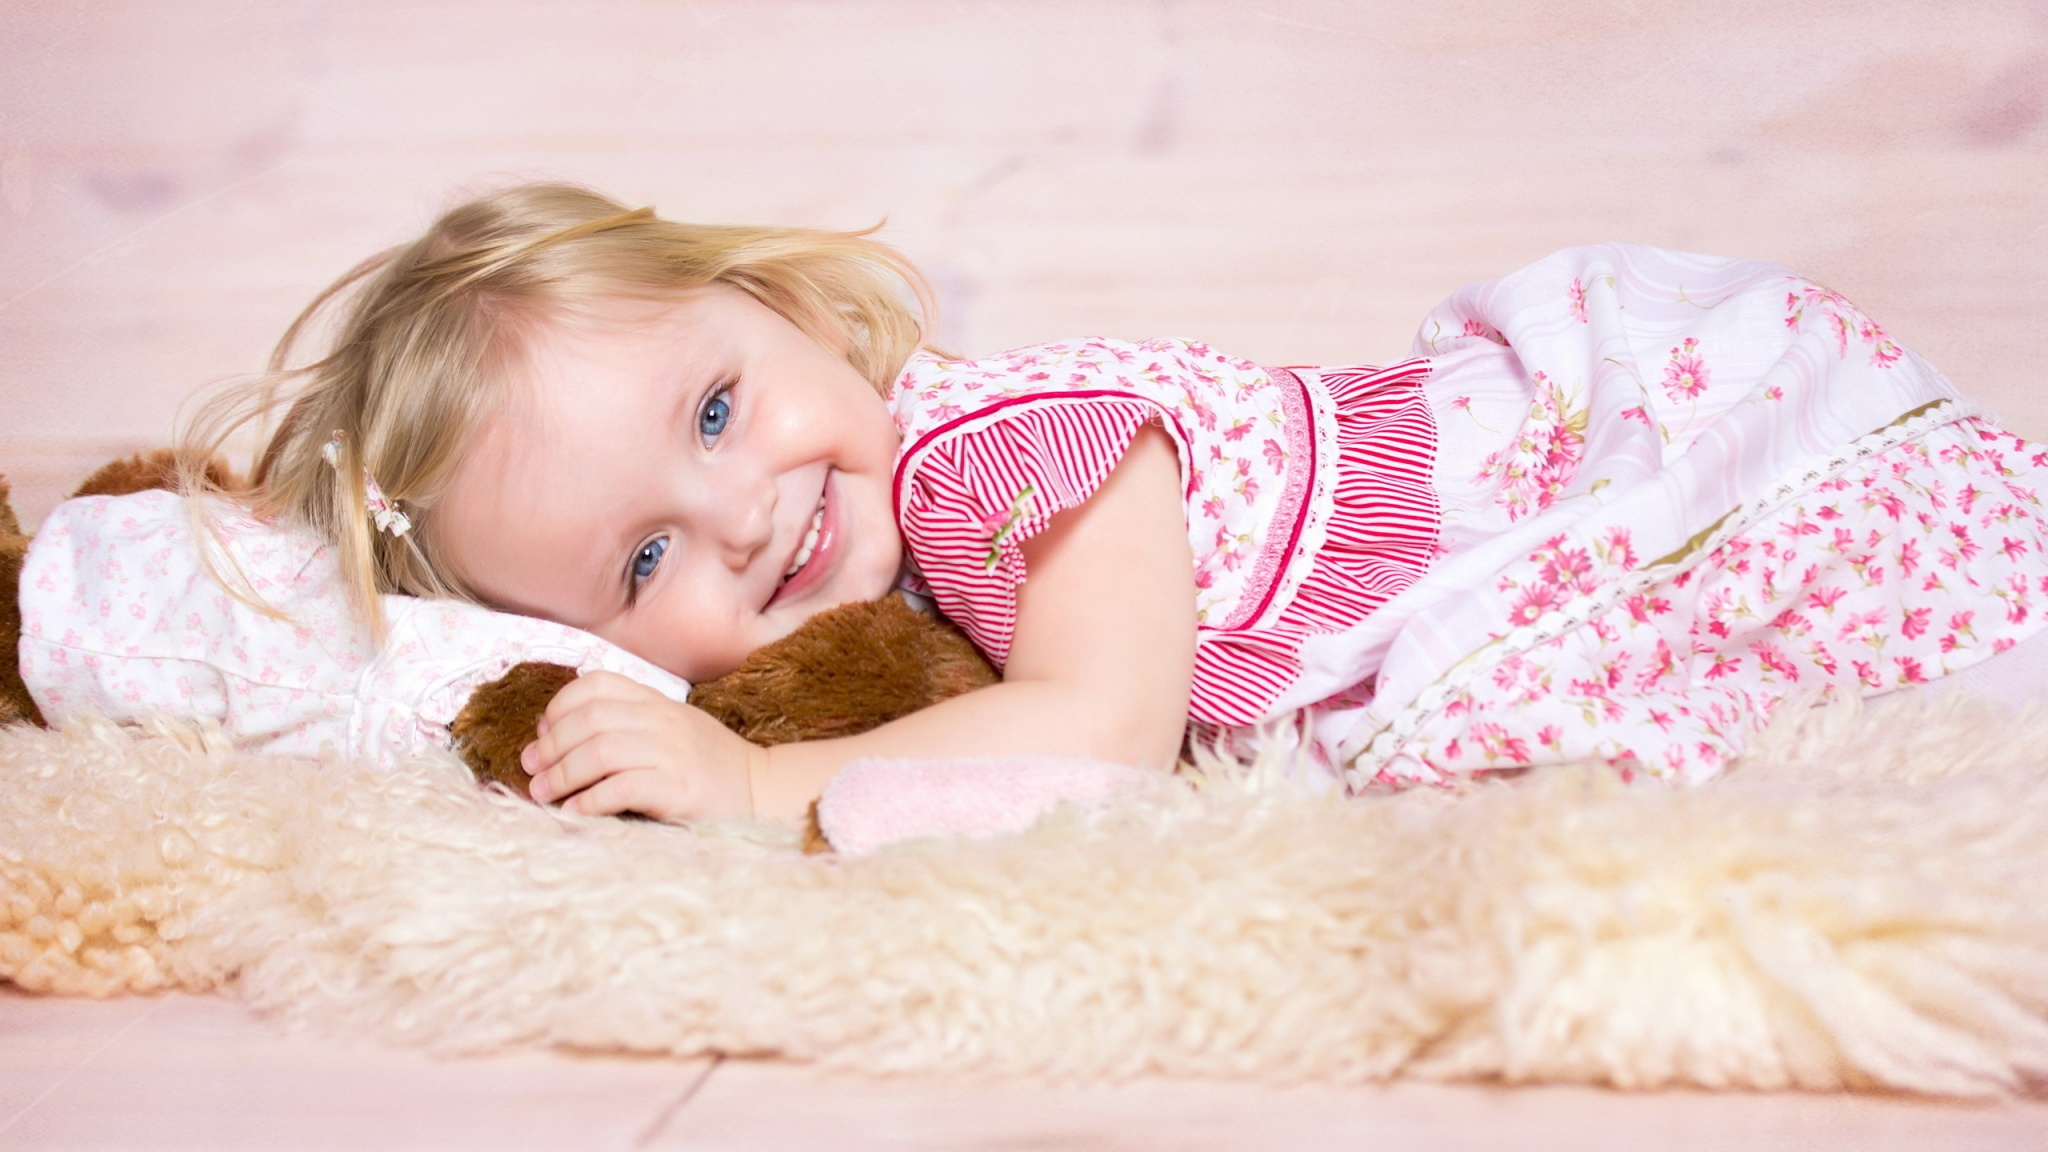 Girl cute pictures baby